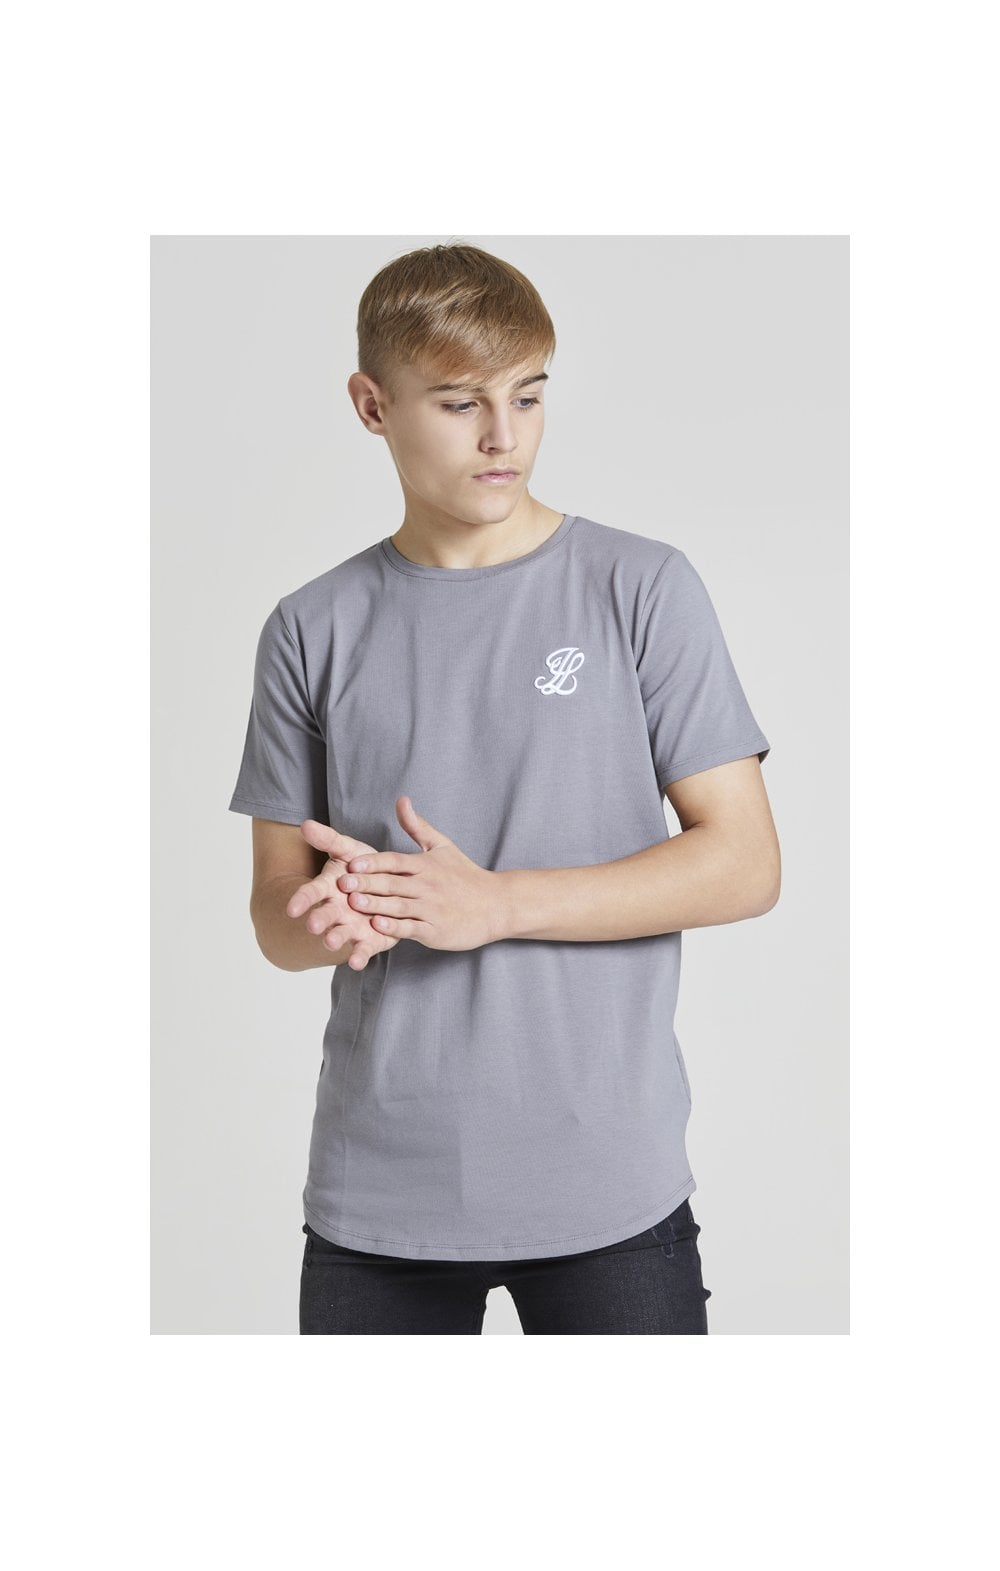 Illusive London S/S Core Tee - Grey (1)